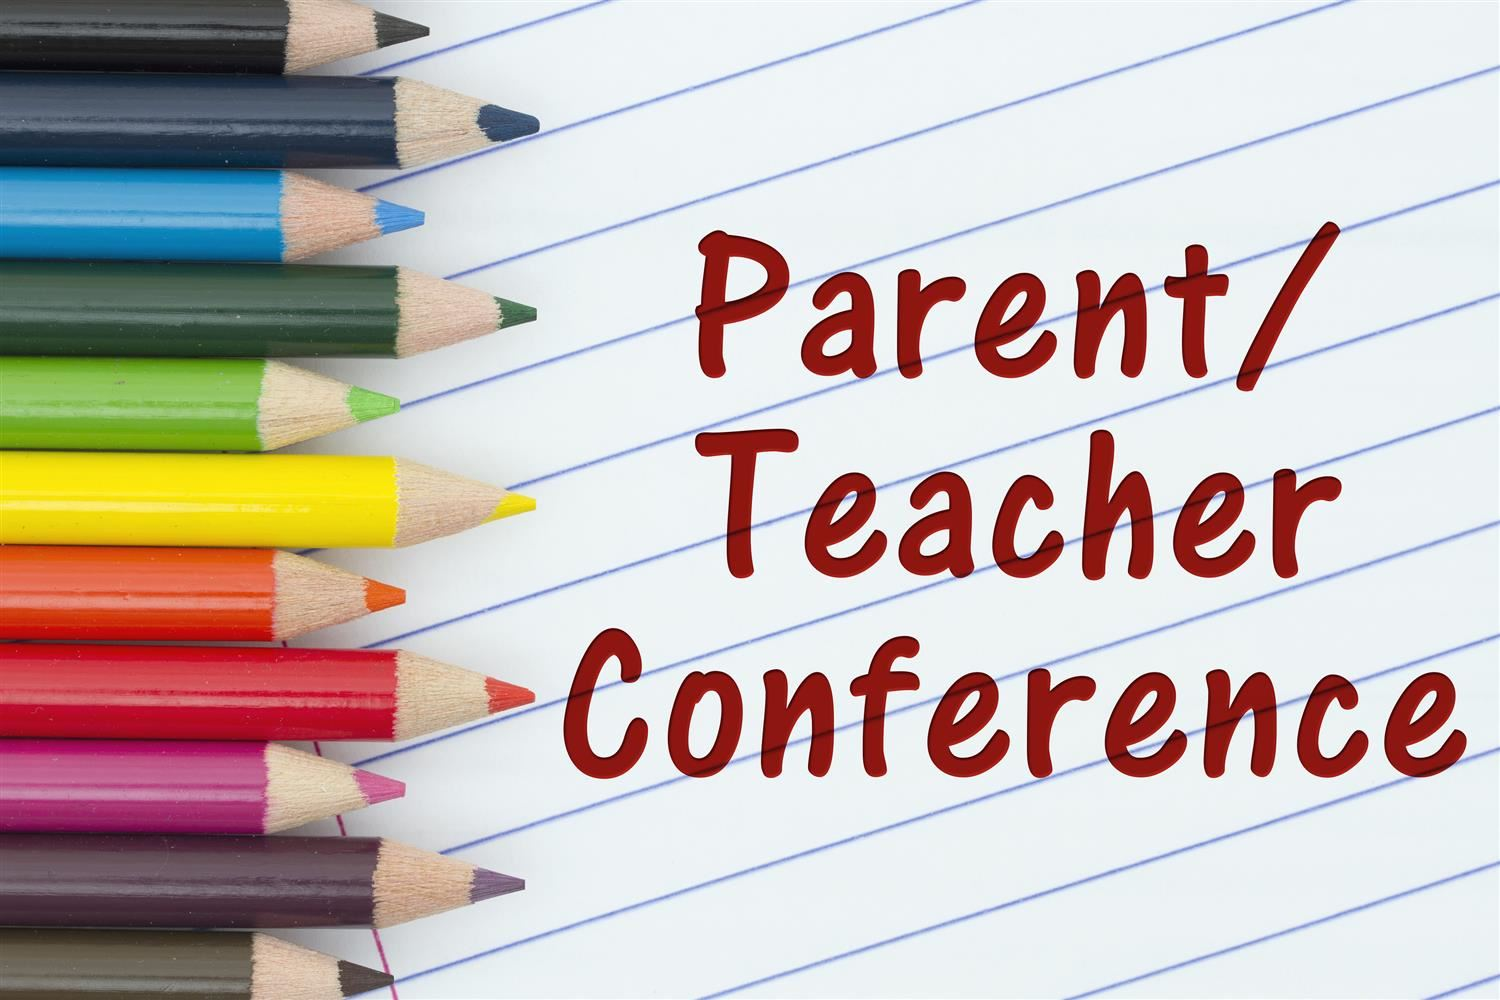 Schedule Your Virual Parent Teacher Conferences Oct 19th and 20th  4-7 p.m.